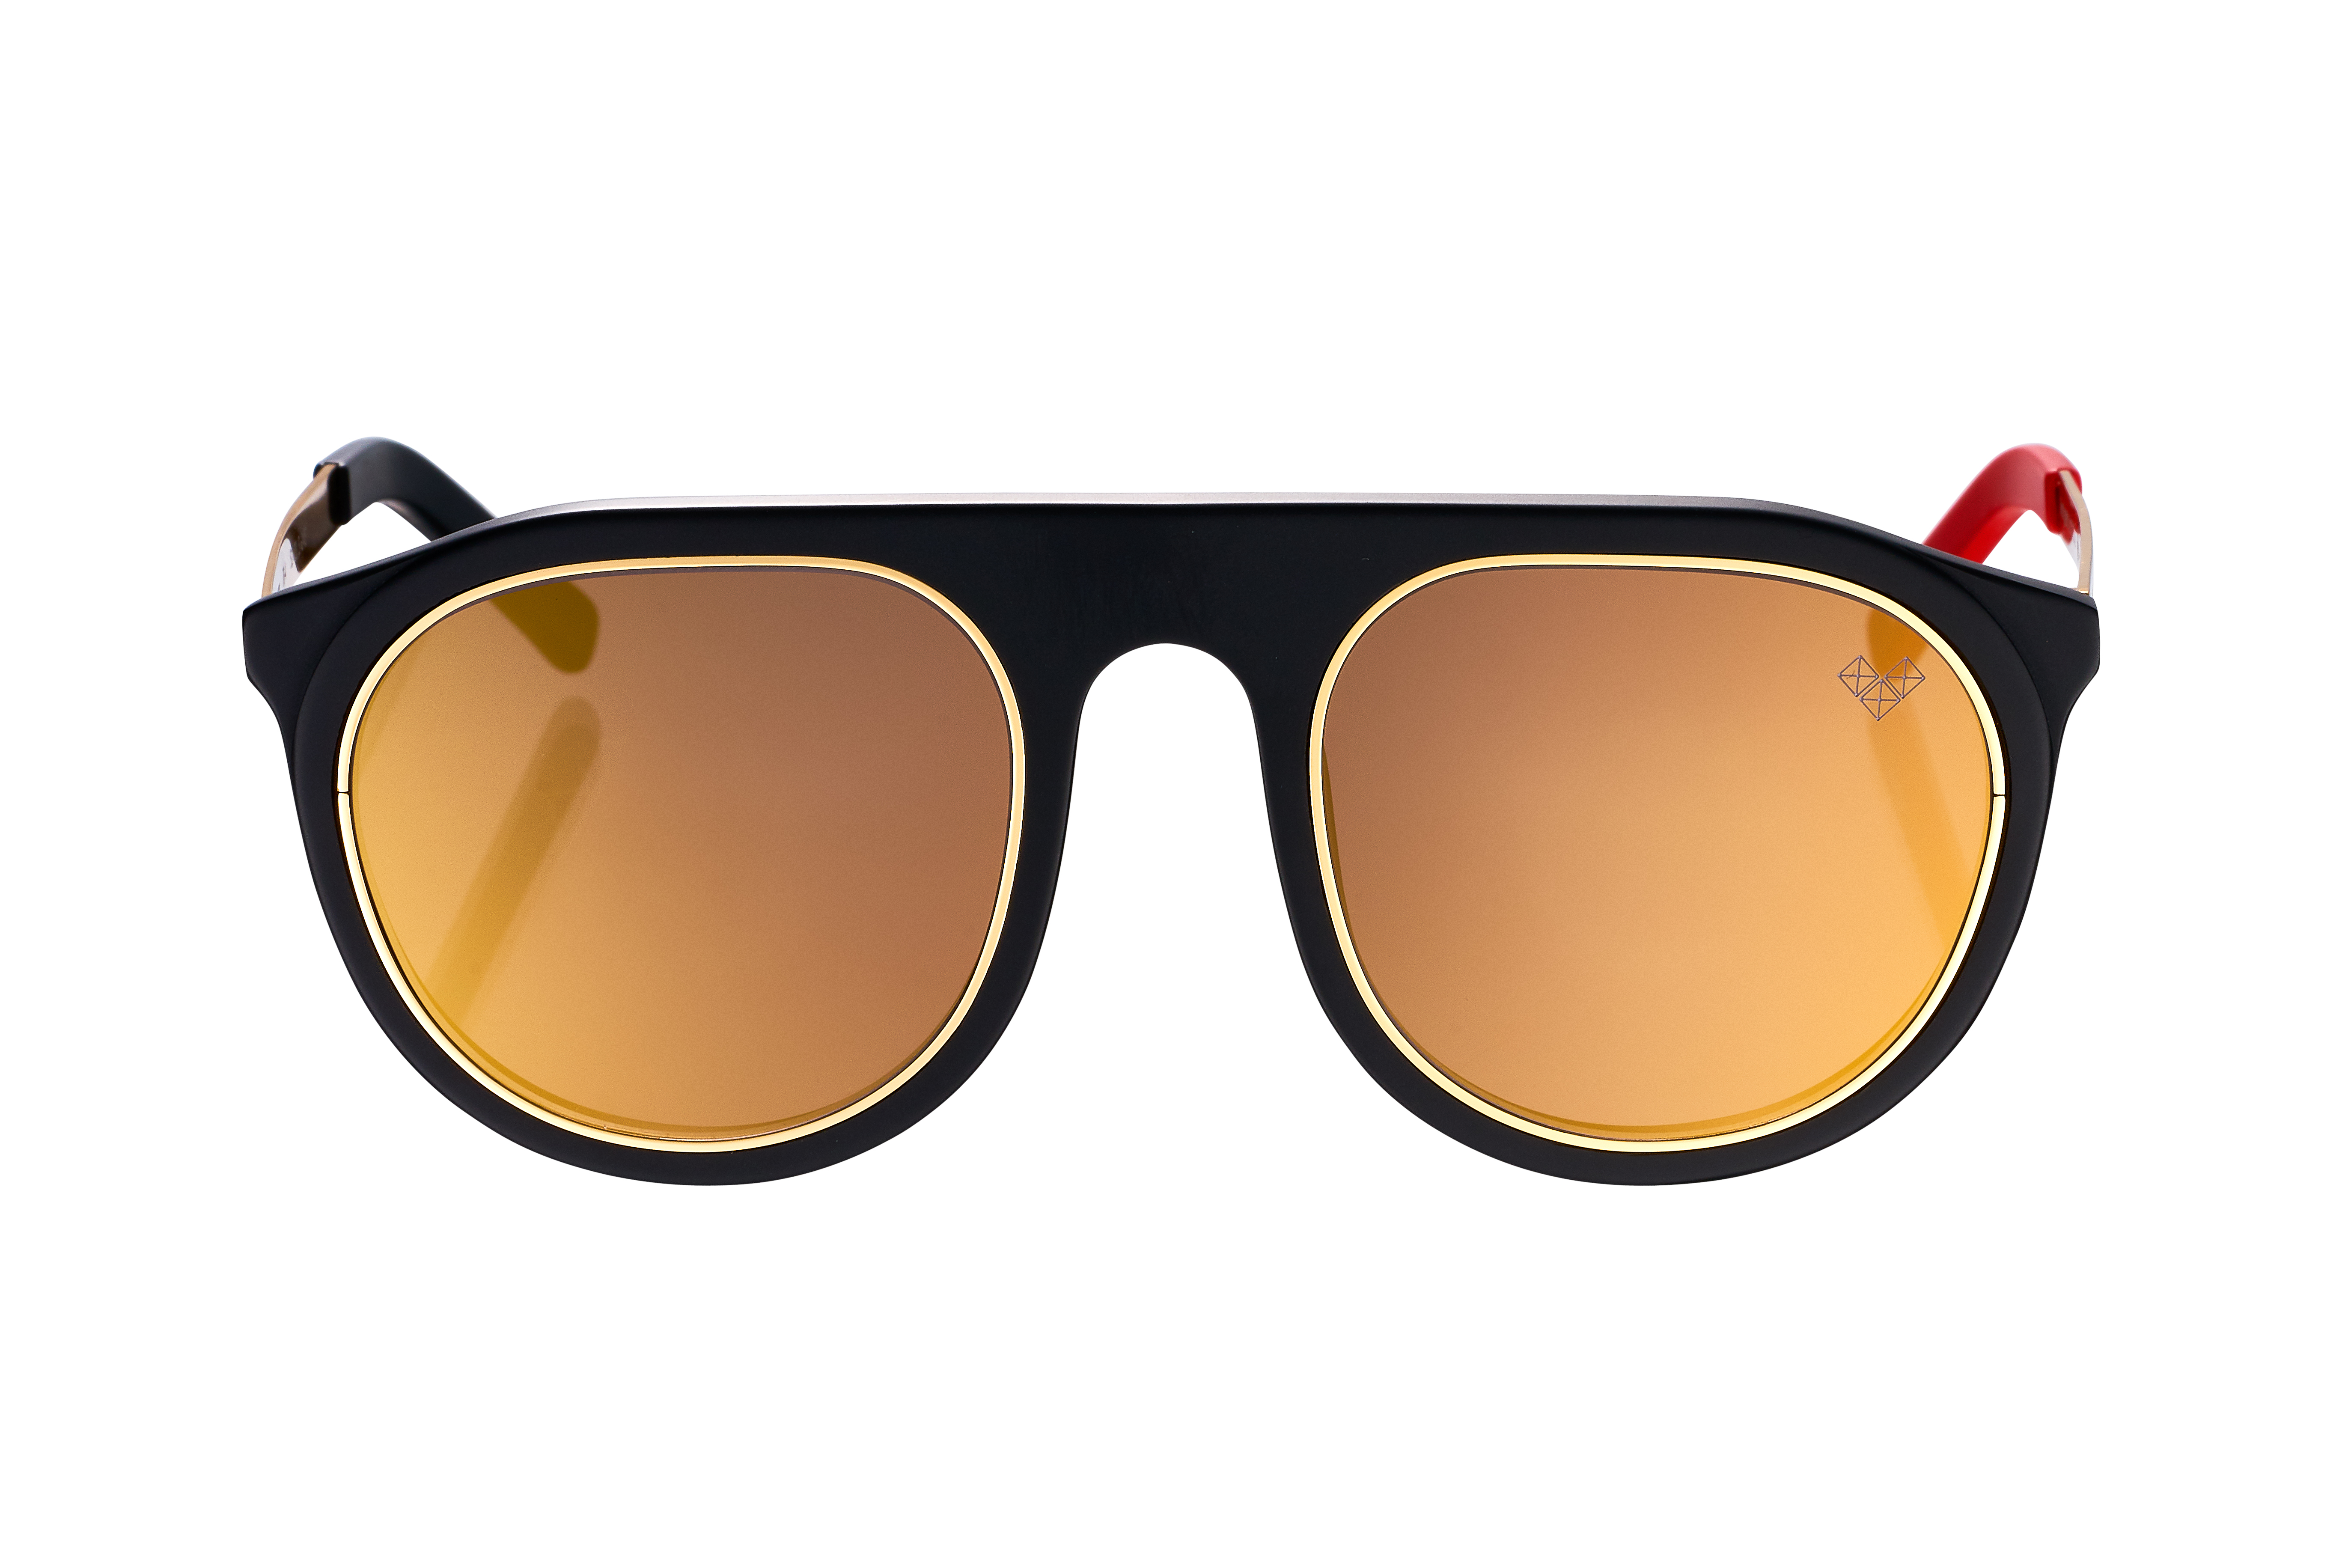 TROY-Tr-4 With Gold Mirror Lenses